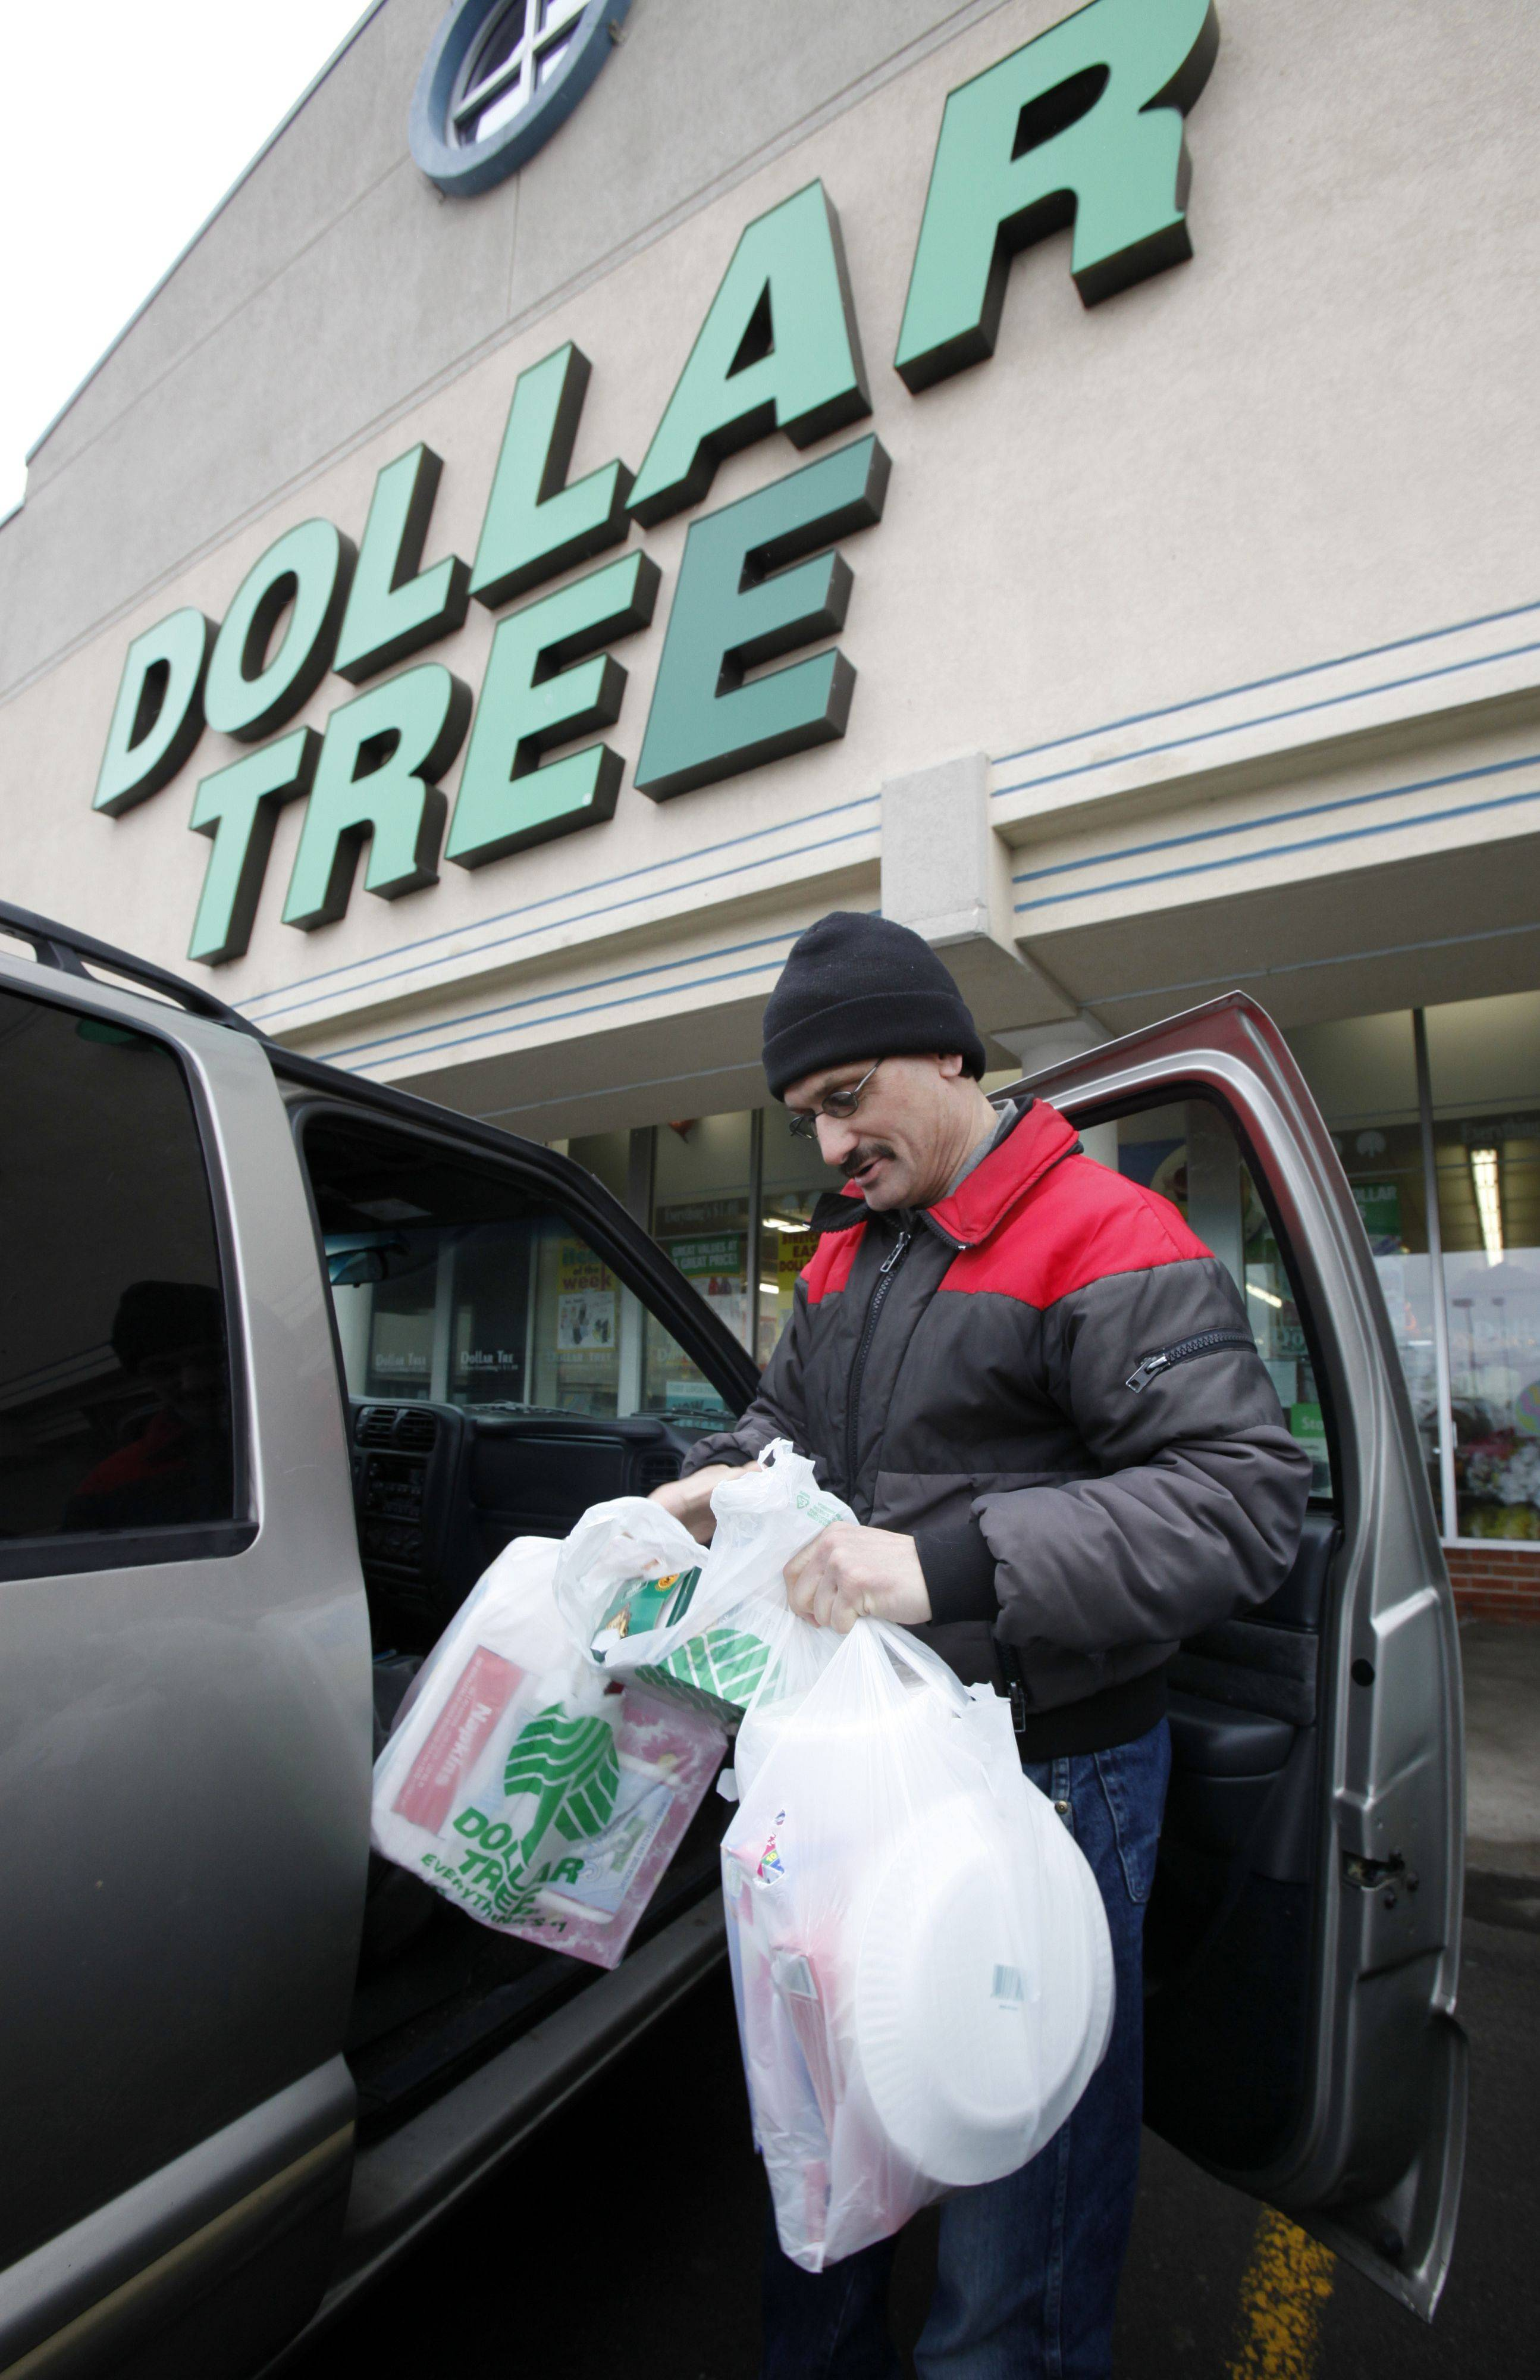 Larry Buckley leaves a Dollar Tree store in Batavia, N.Y. Last month, Dollar Tree Stores Inc. reported a 22 percent jump in quarterly earnings.